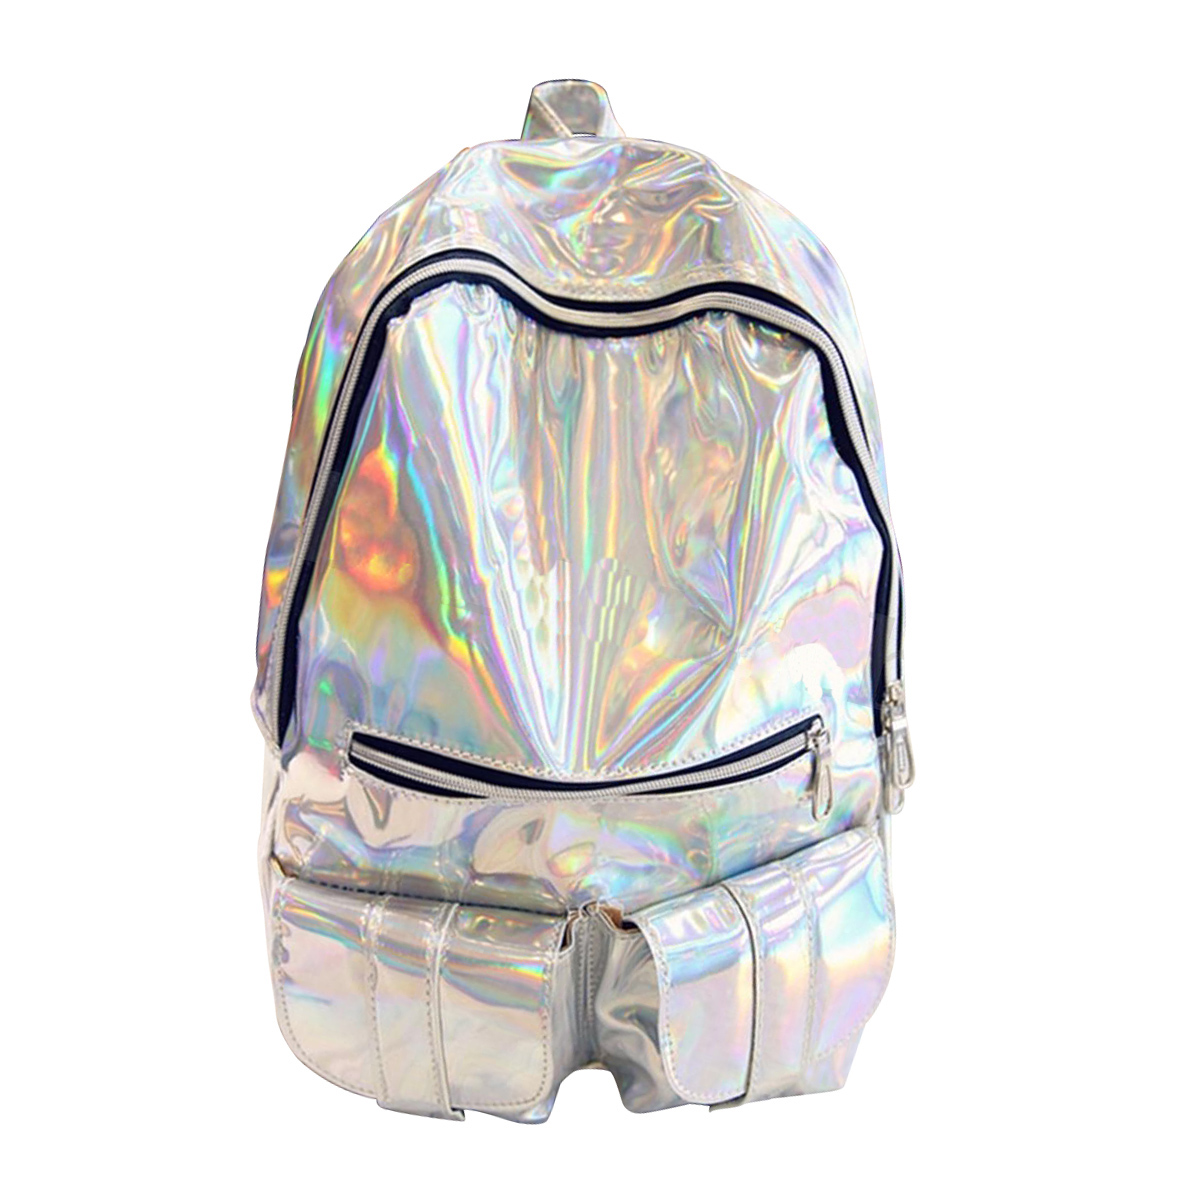 Brand design Women Backpacks Fashion Solid Luminous patent leather School Bags for teenager grils PU Leather Women Rucksack new brand designer women fashion backpacks simple koran style school for teenager girls ladies shoulder bags black